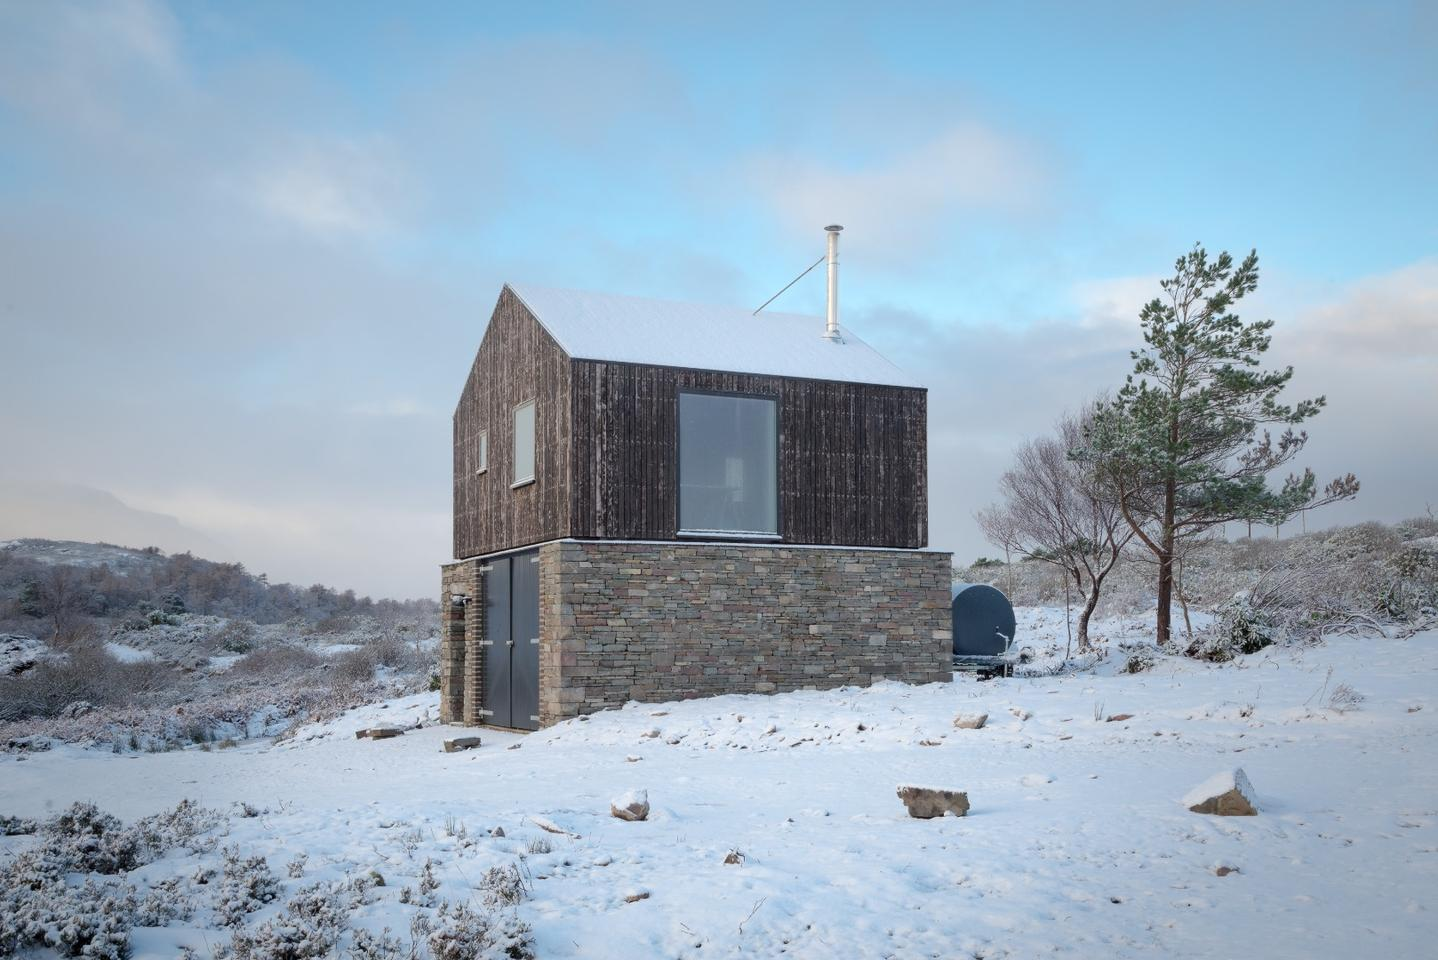 Lochside House is located in a rural area in Scotland's West Highlands